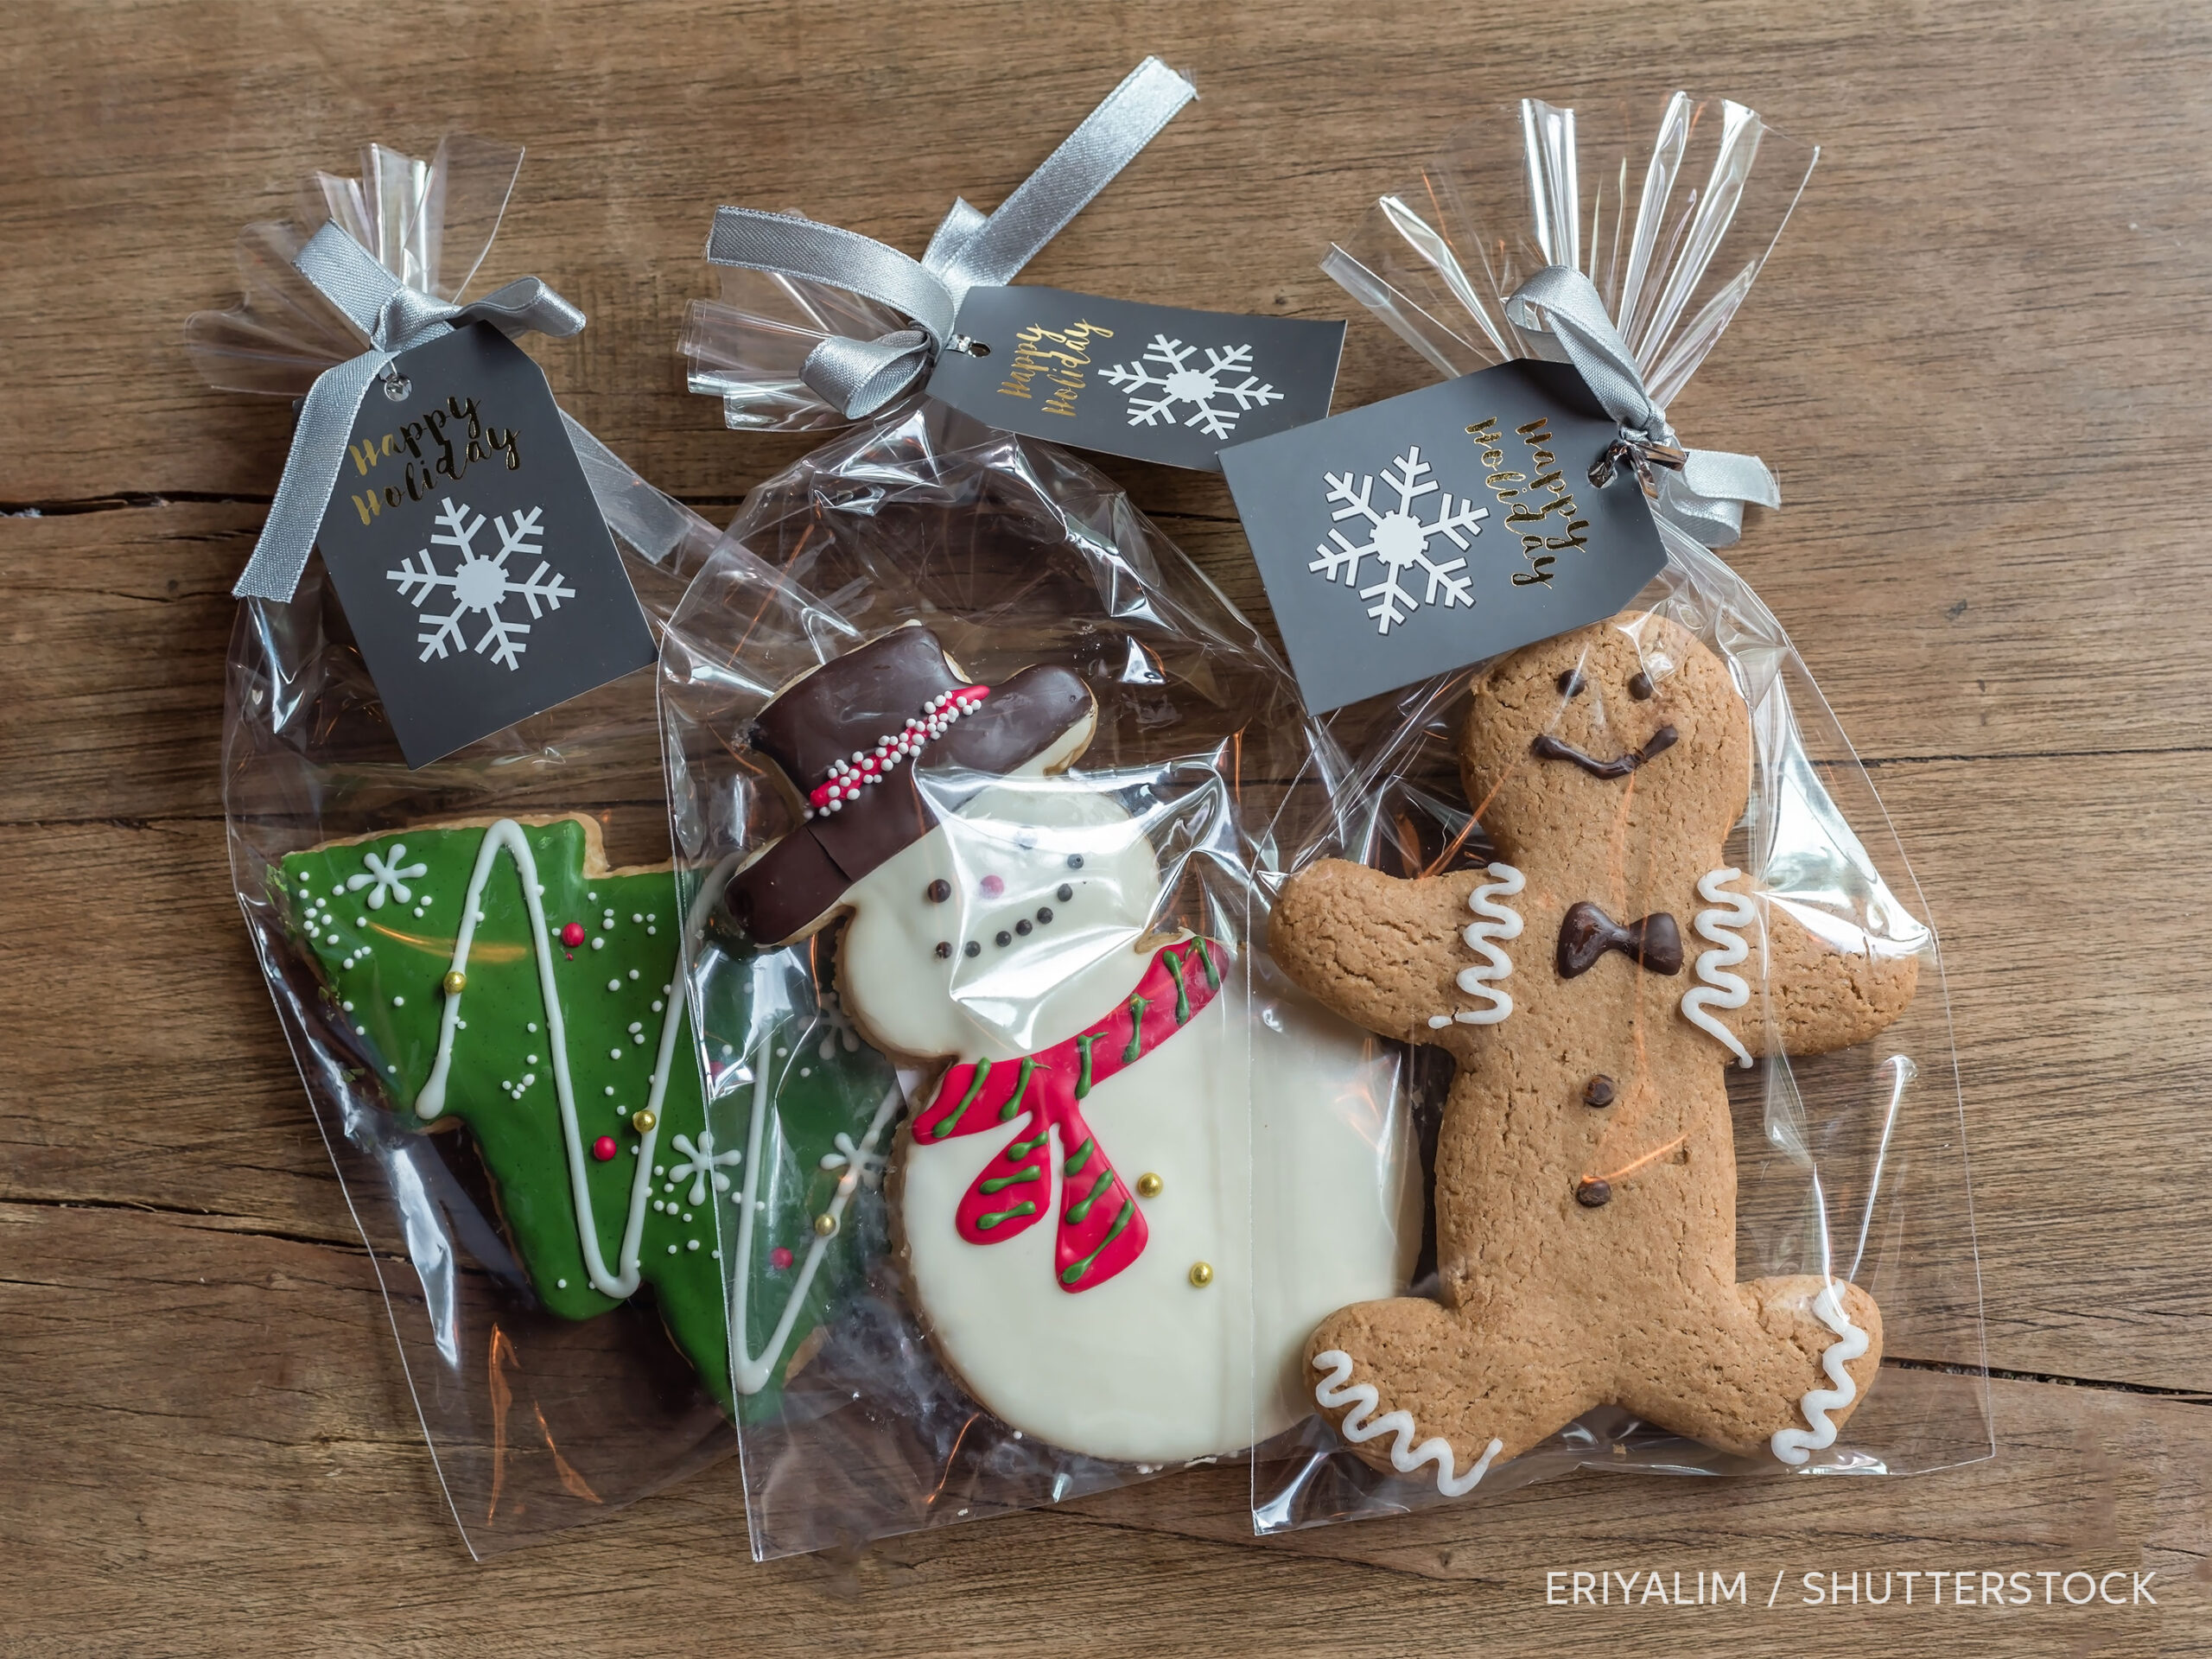 Frosted Christmas cookies in gift bags, photo